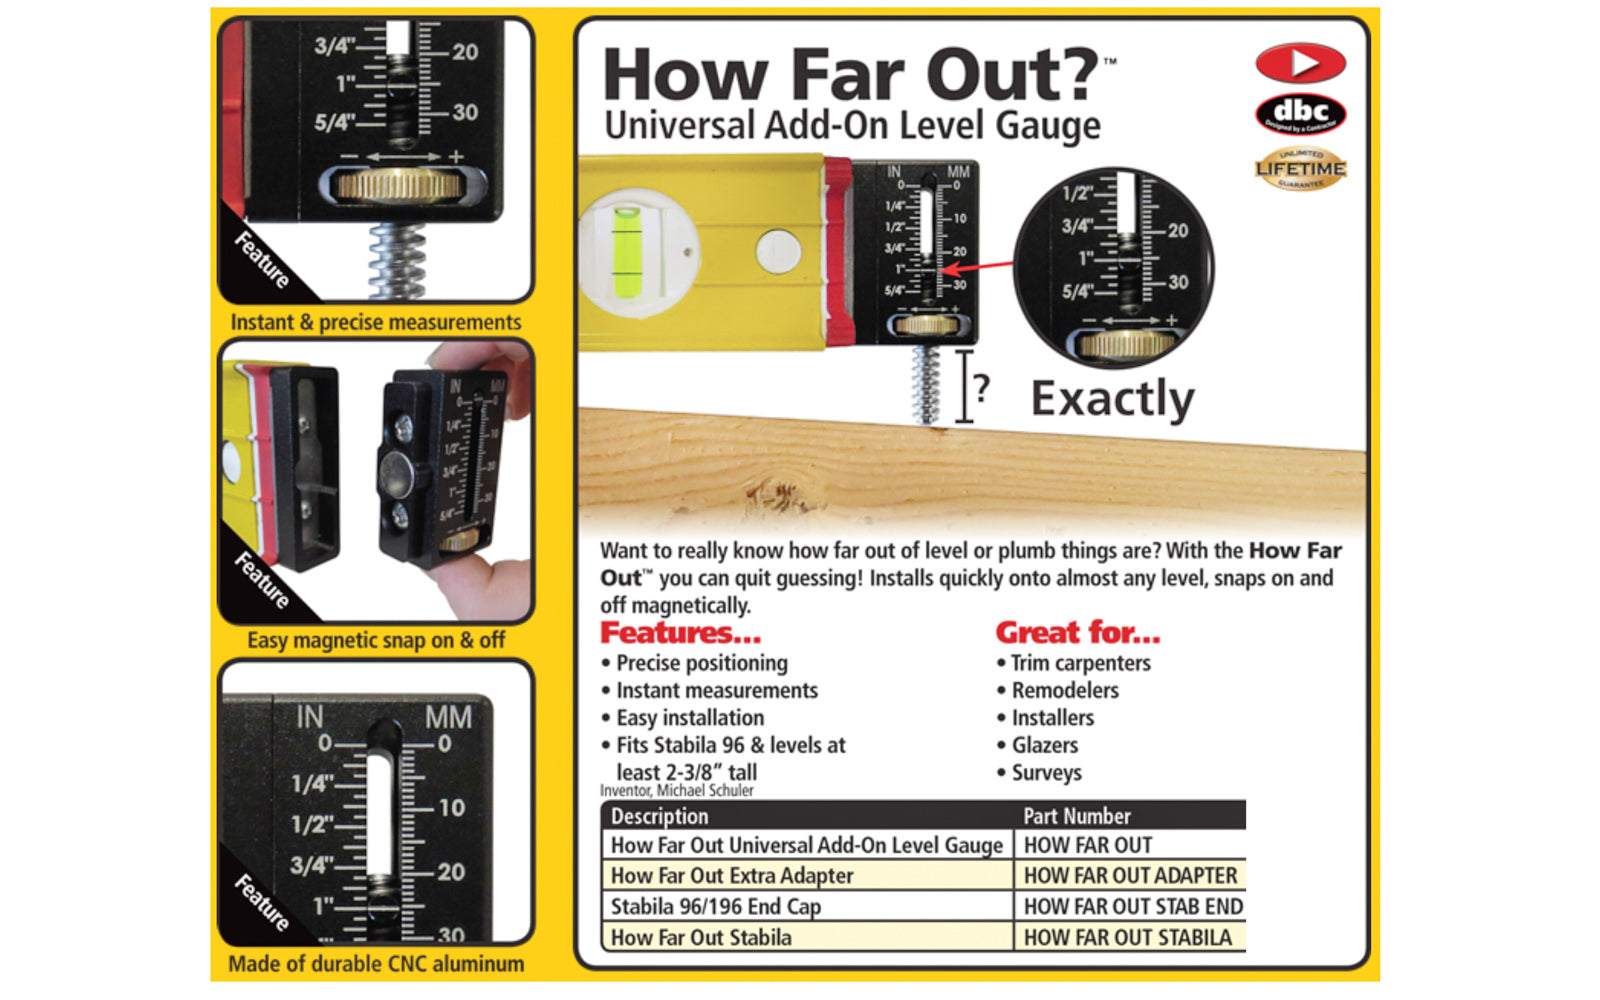 FastCap How Far Out? Universal Add-On Level Gauge - Model No. HOW FAR OUT - Fits Stabila 96 type levels & levels at least 2-3/8